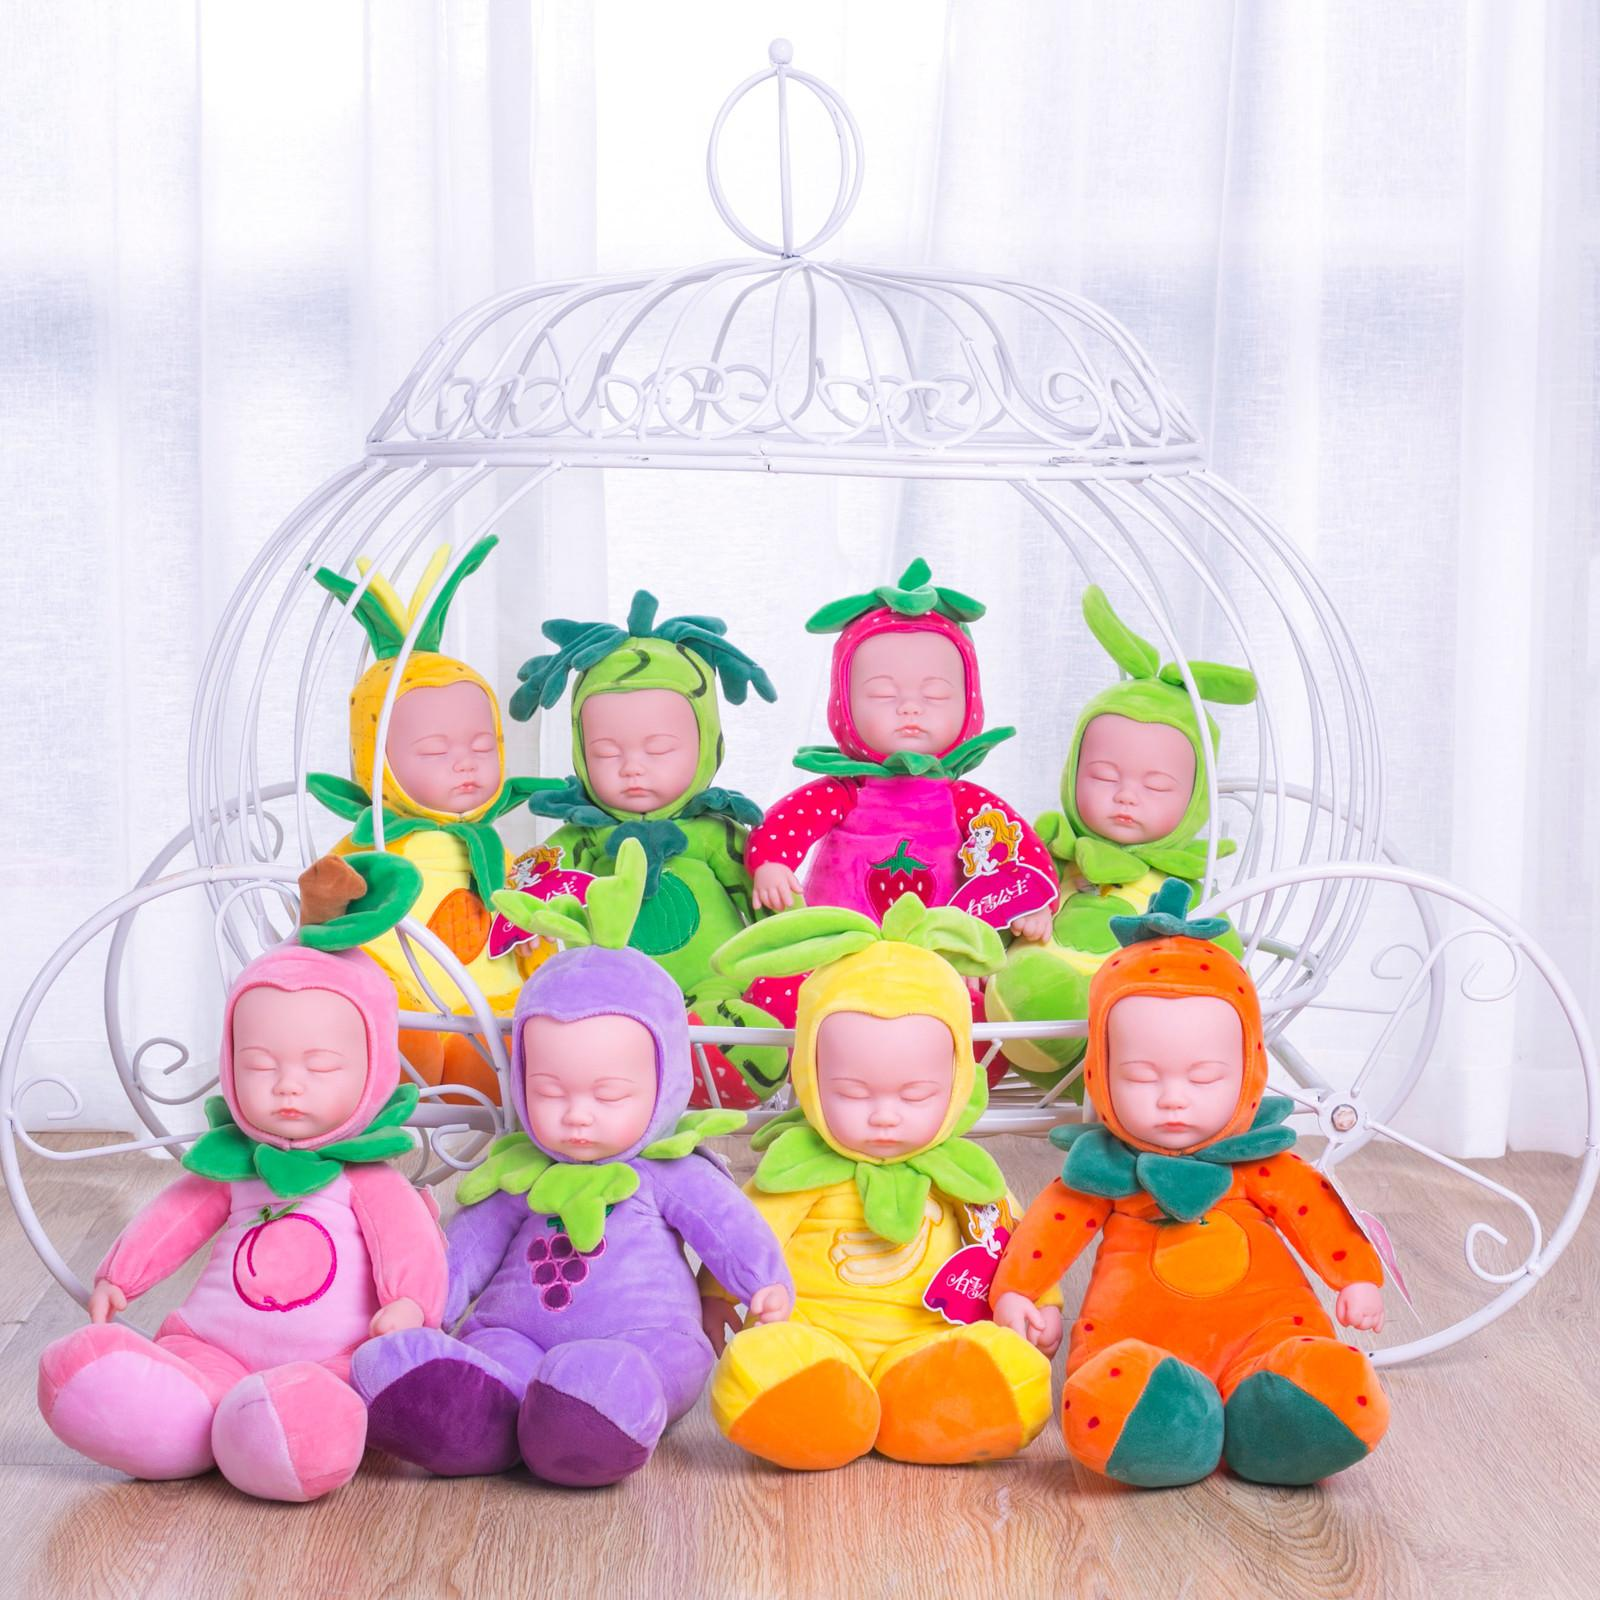 35CM Soft Plush Doll Sleep Baby Doll Toys fruits Full Silicone Face Babies Kids Toys Cute Reborn Doll For Children Kid Toy F1211